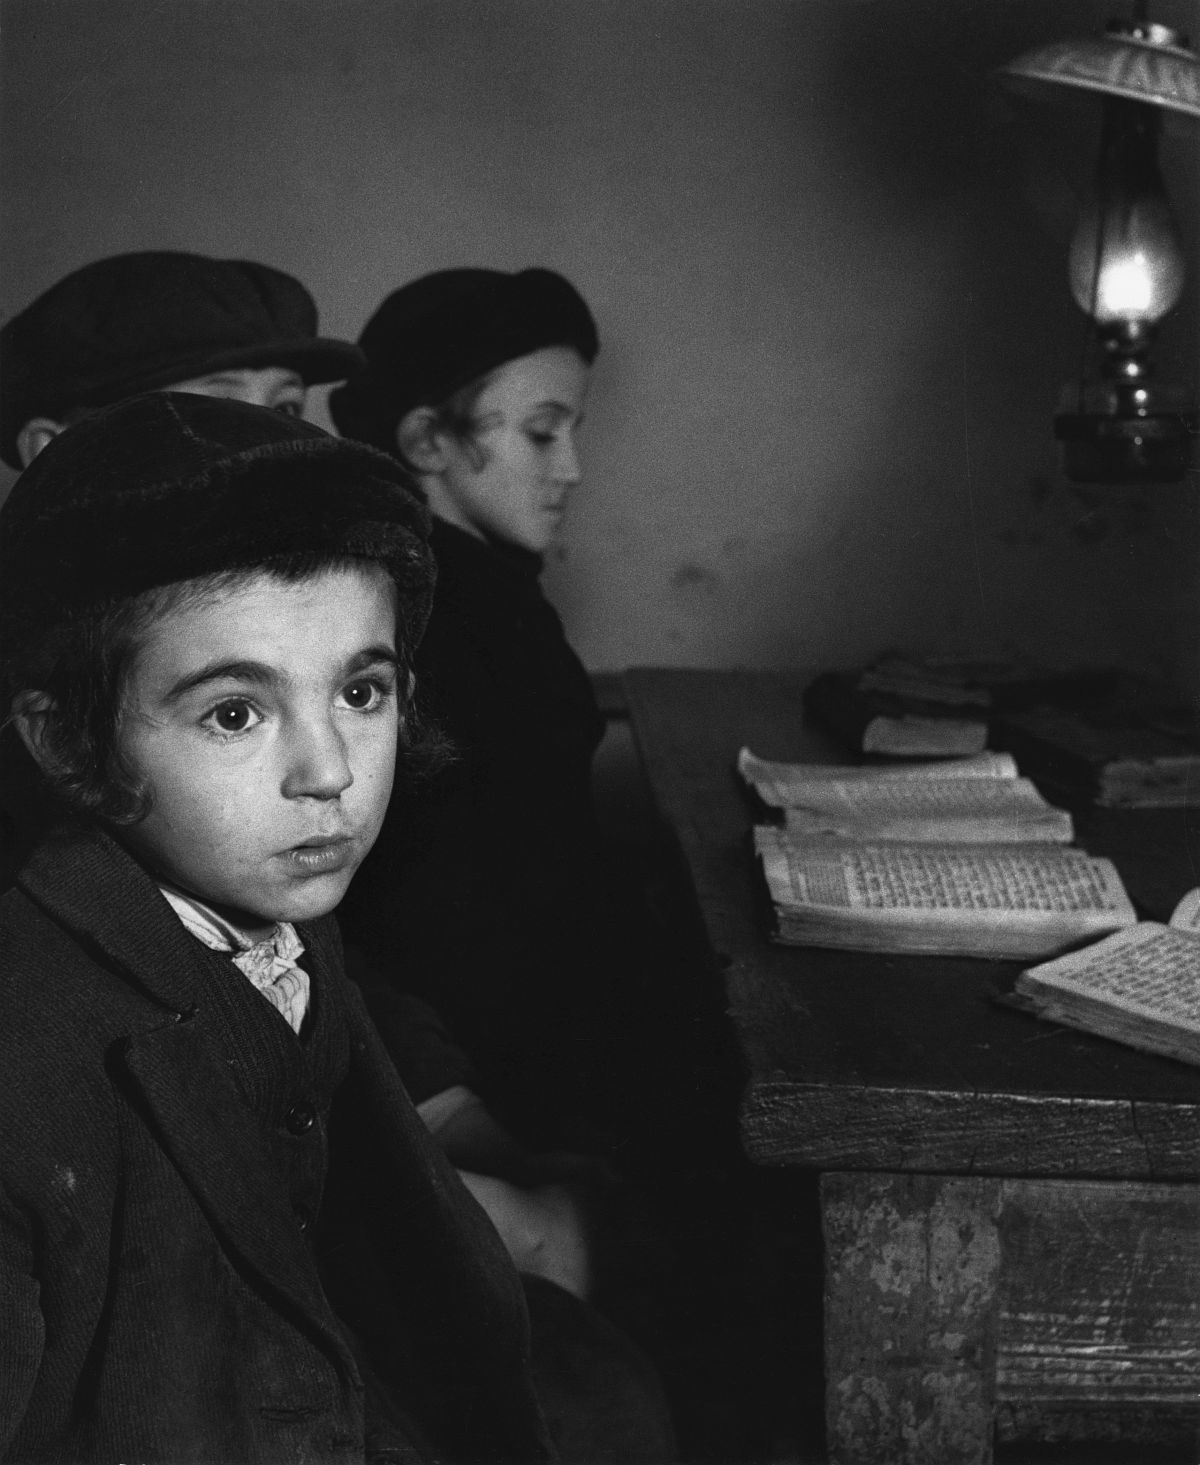 Roman Vishniac, [David Eckstein, seven years old, and classmates in cheder (Jewish elementary school), Brod], ca. 1938. Gelatin silver print. © Mara Vishniac Kohn, courtesy International Center of Photography.